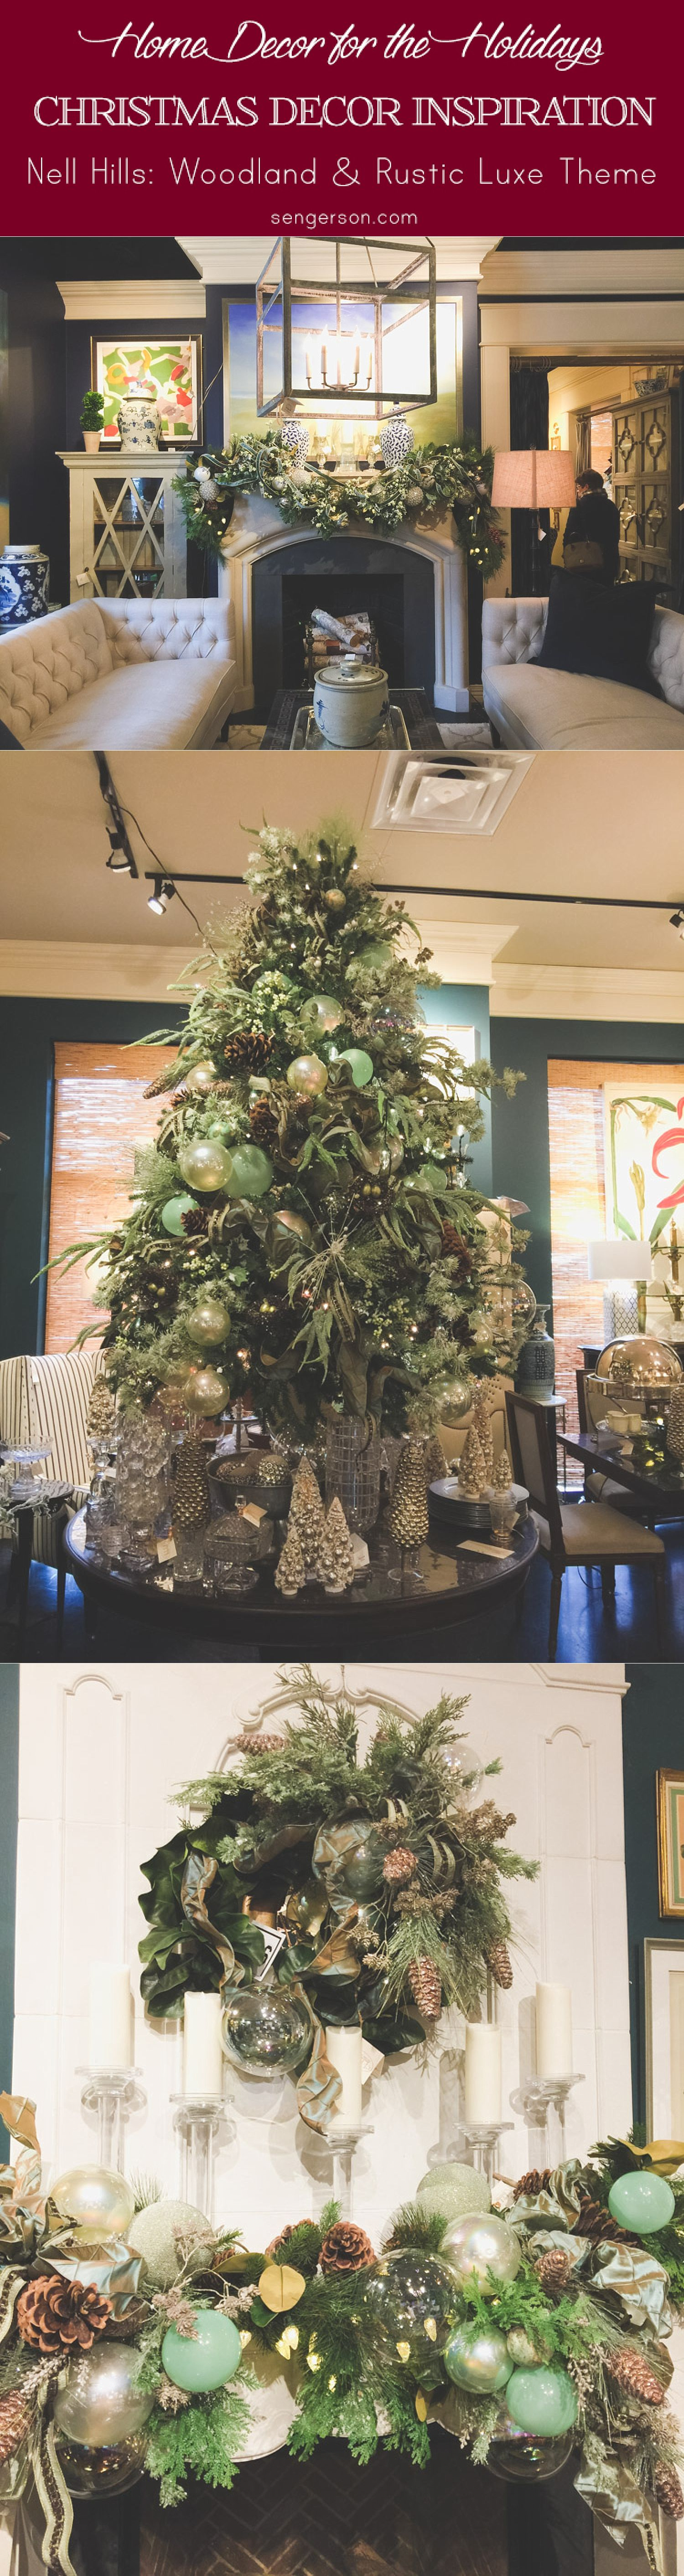 Christmas Decor Inspiration from Nell HIlls - rustic luxe with glam.